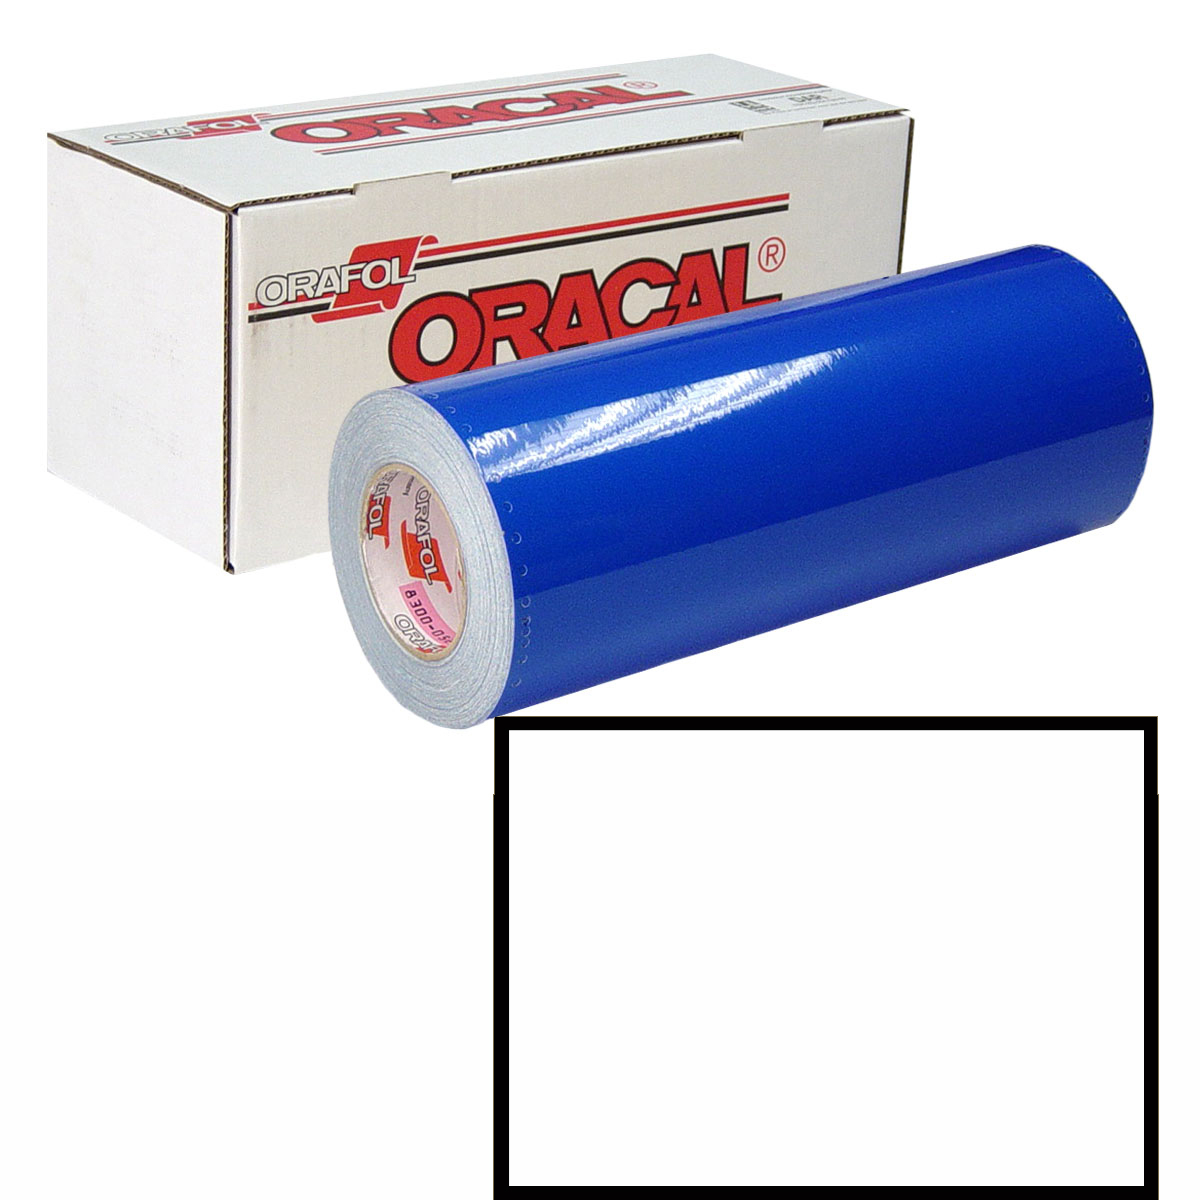 ORACAL 631 15In X 10Yd 000 Transparent